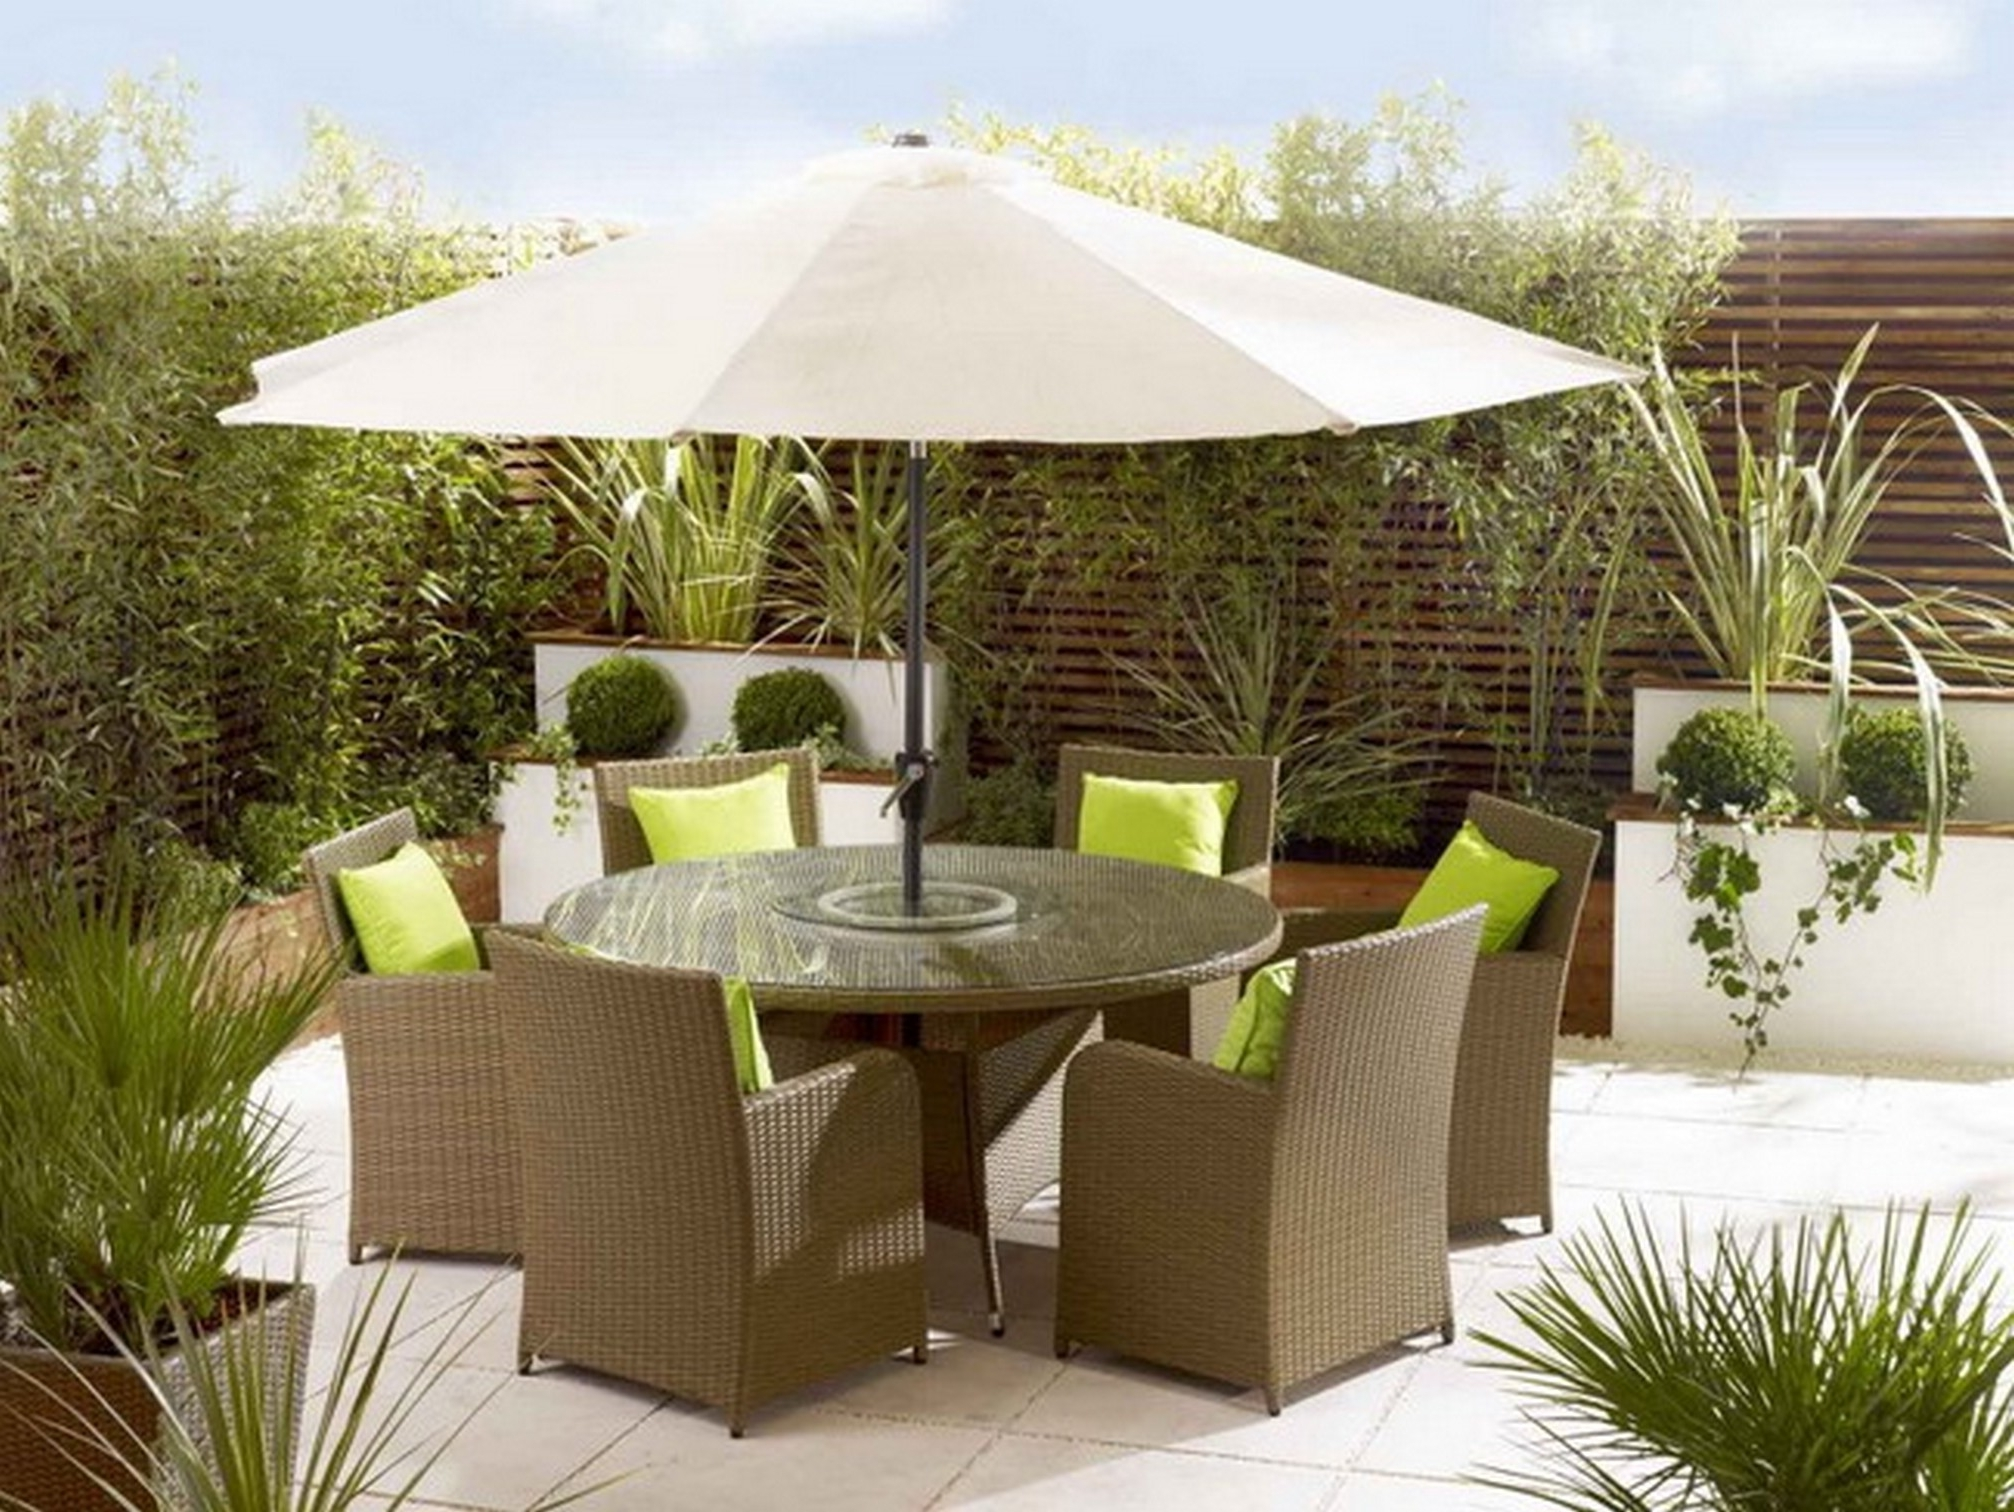 Patio Furniture With Umbrellas Within Favorite Patio Umbrella Table Attachment — Mistikcamping Home Design : The (View 6 of 20)